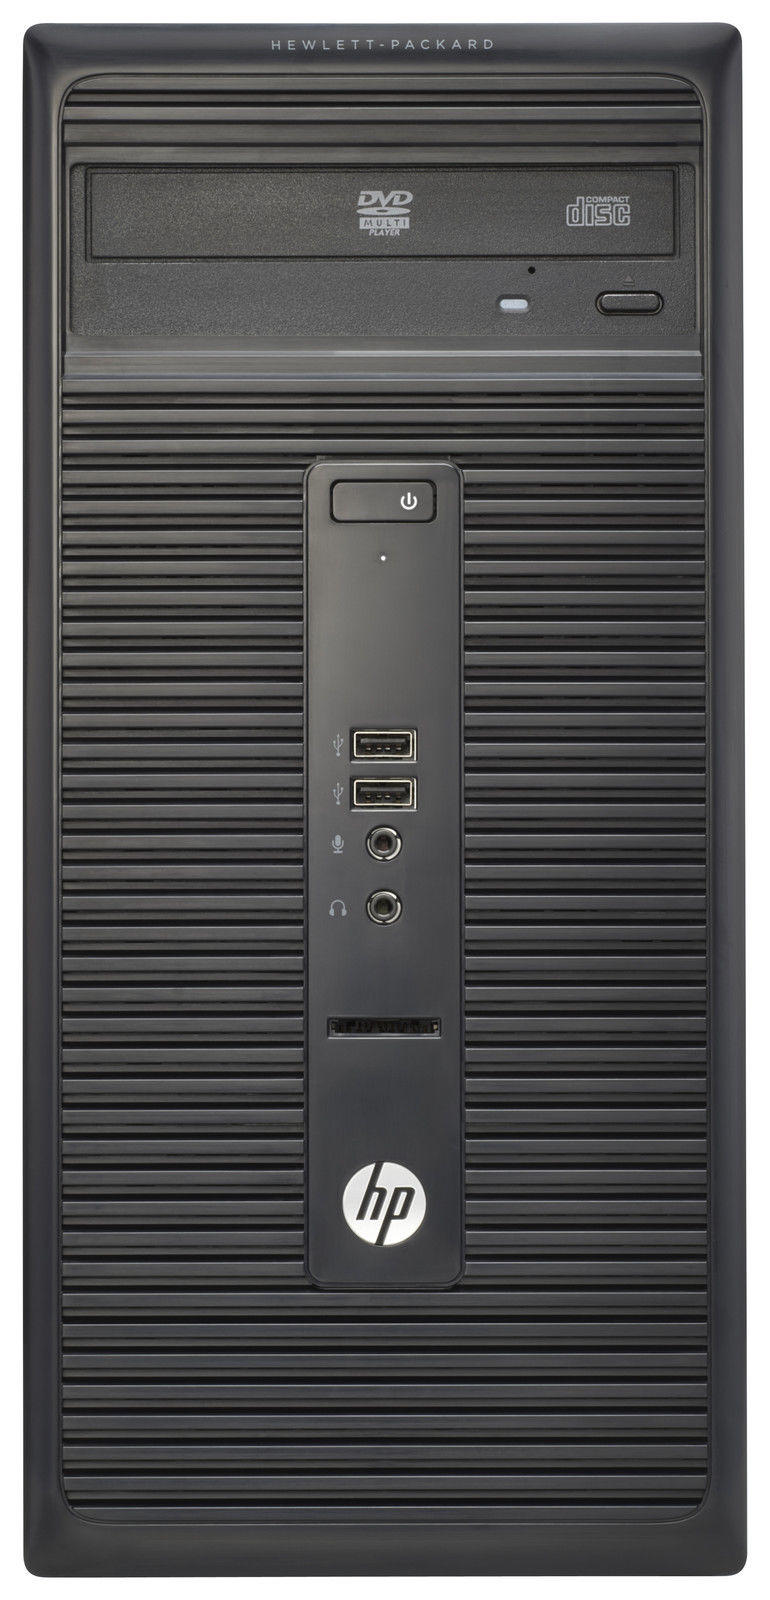 HP 280 G1 Desktop PC w/ Intel Core i5